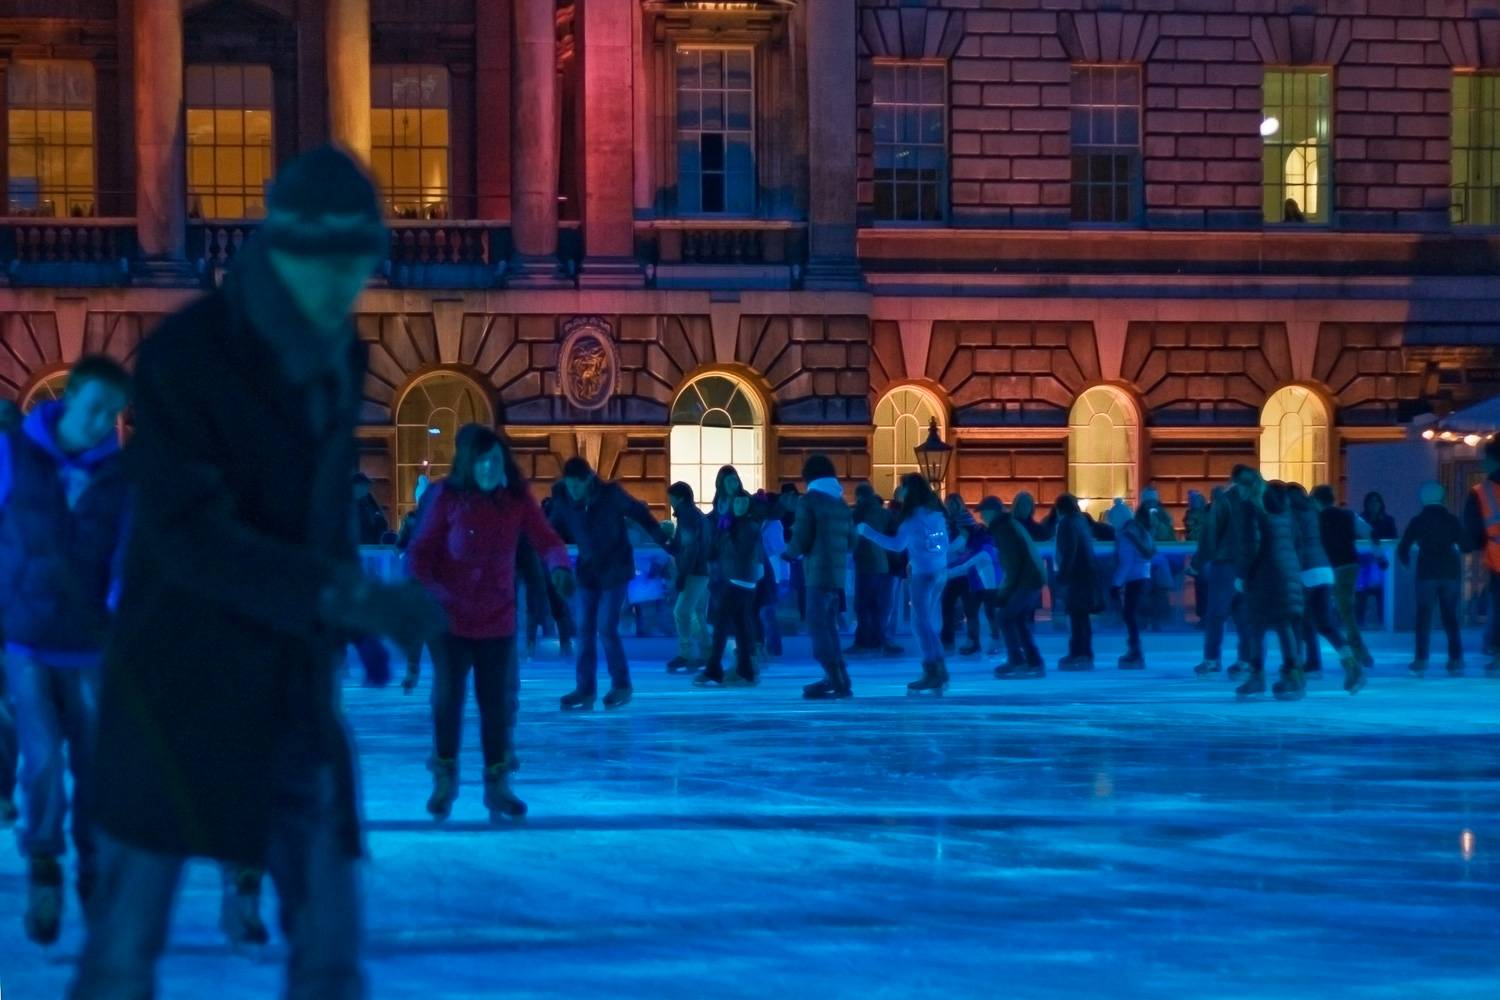 Image of people ice skating on the rink at Somerset House in London at night.